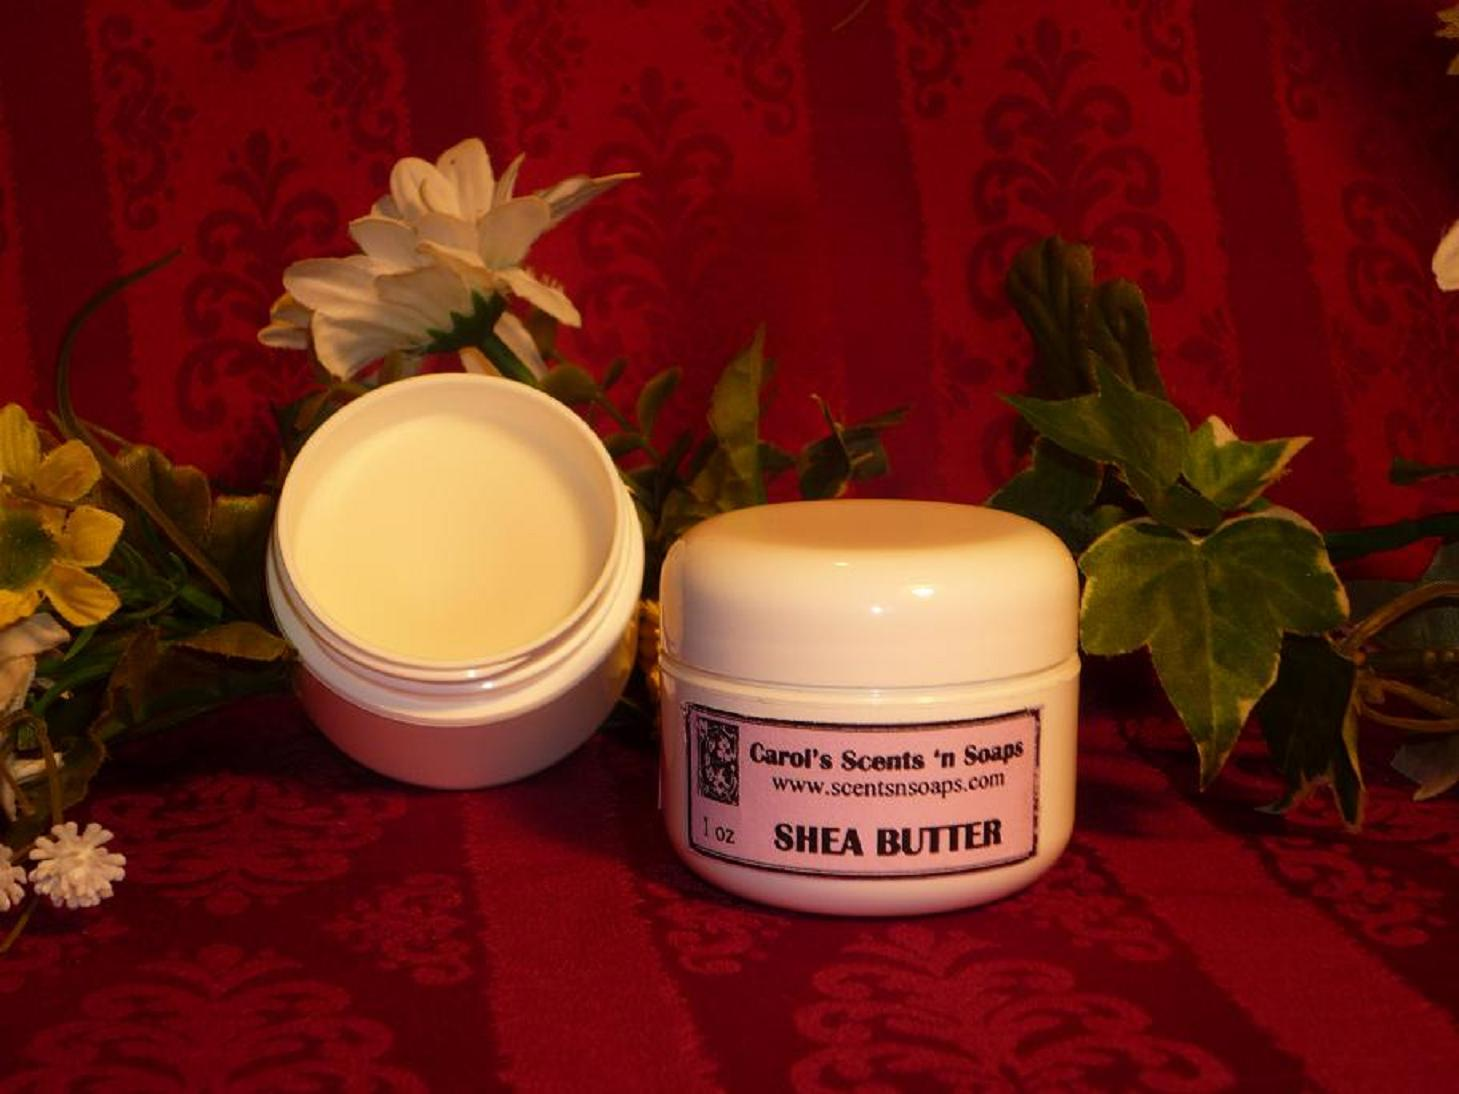 2oz Pure shea Butter